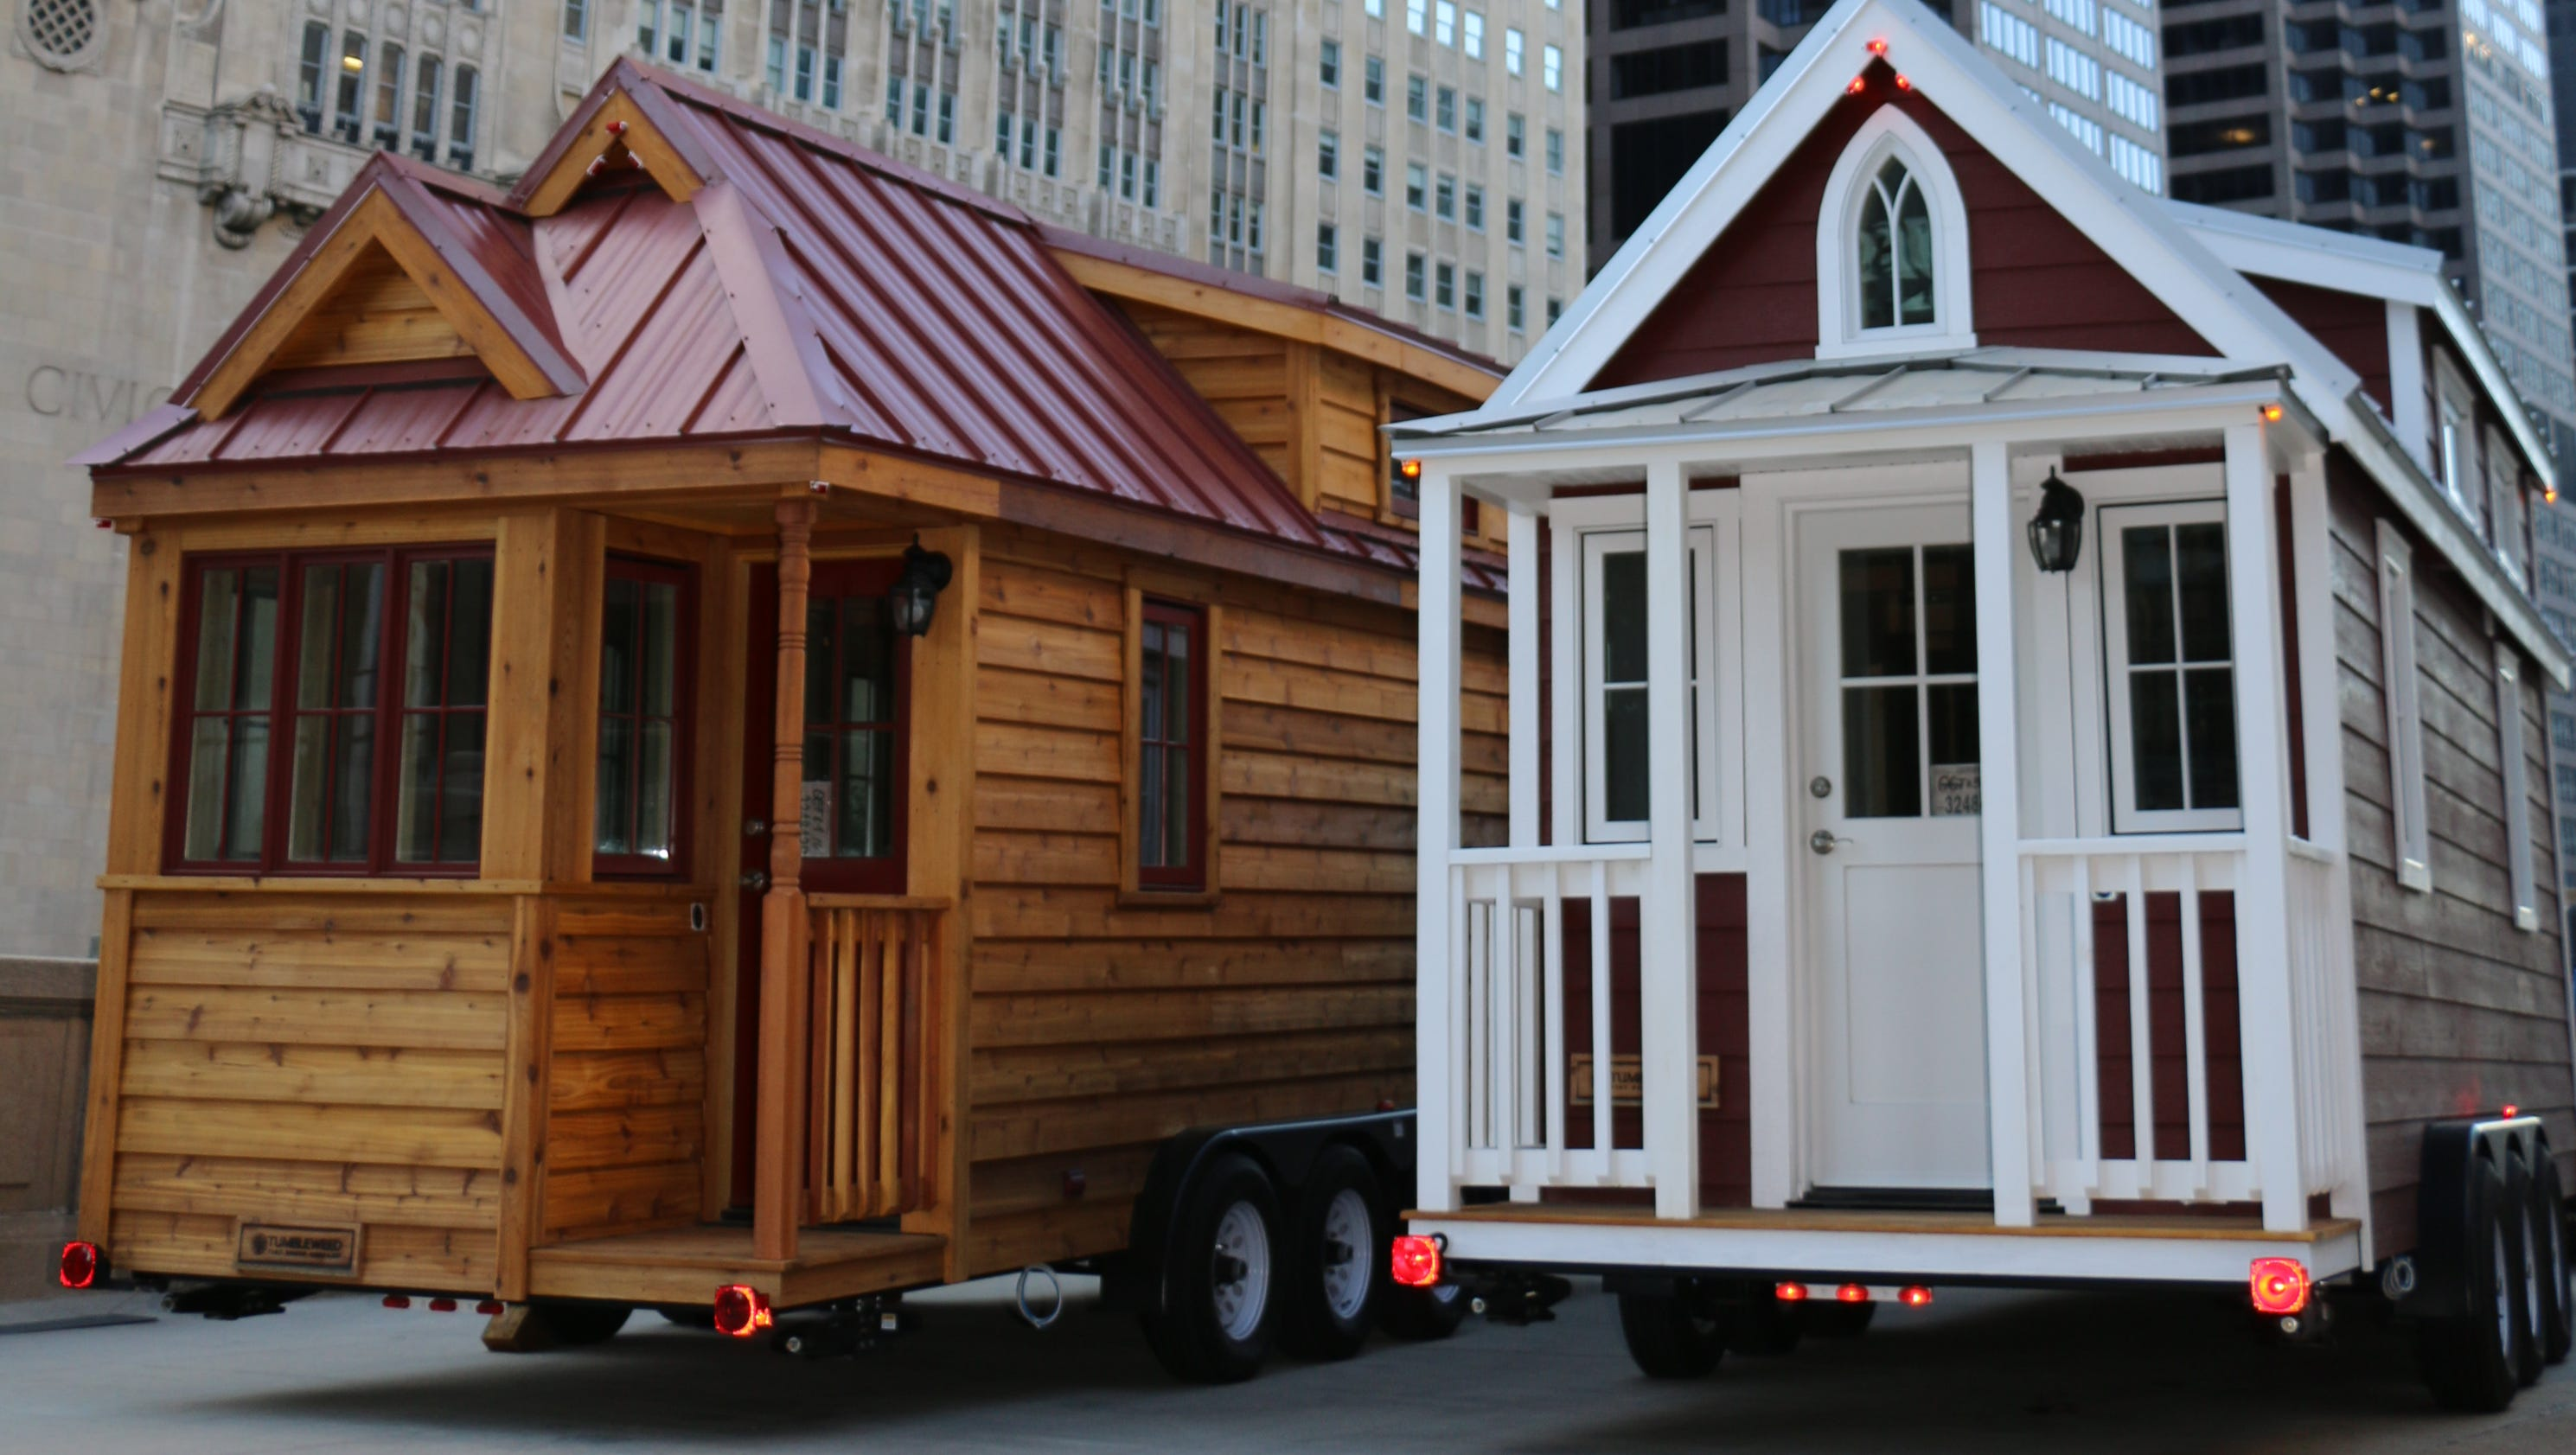 Traveling 'tiny Houses' Make Stop In Mesa